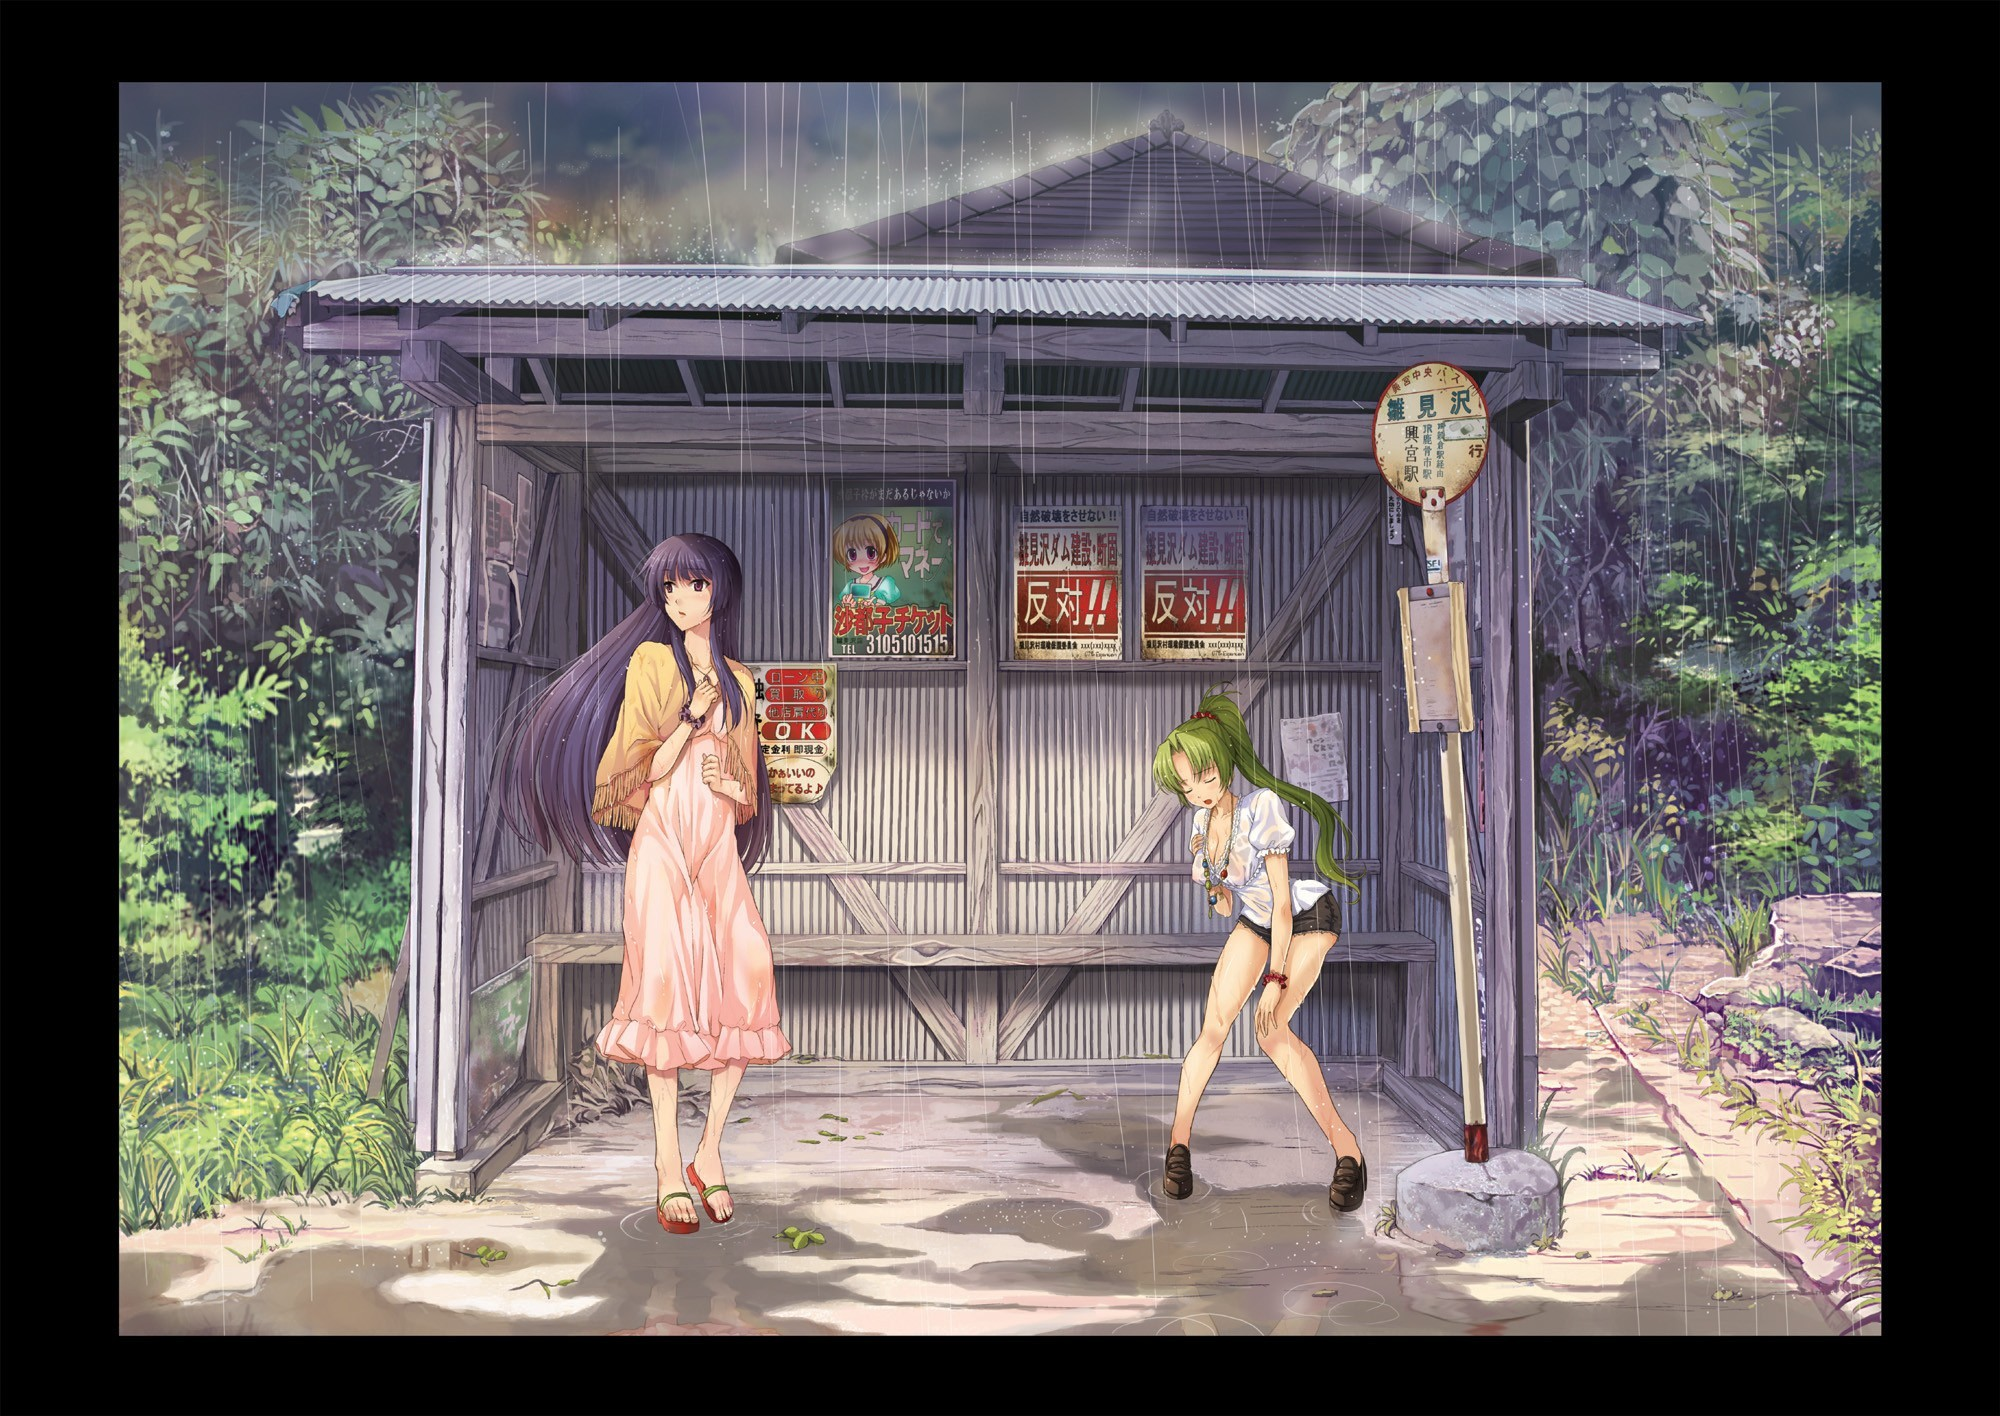 rain wet higurashi no HD Wallpaper